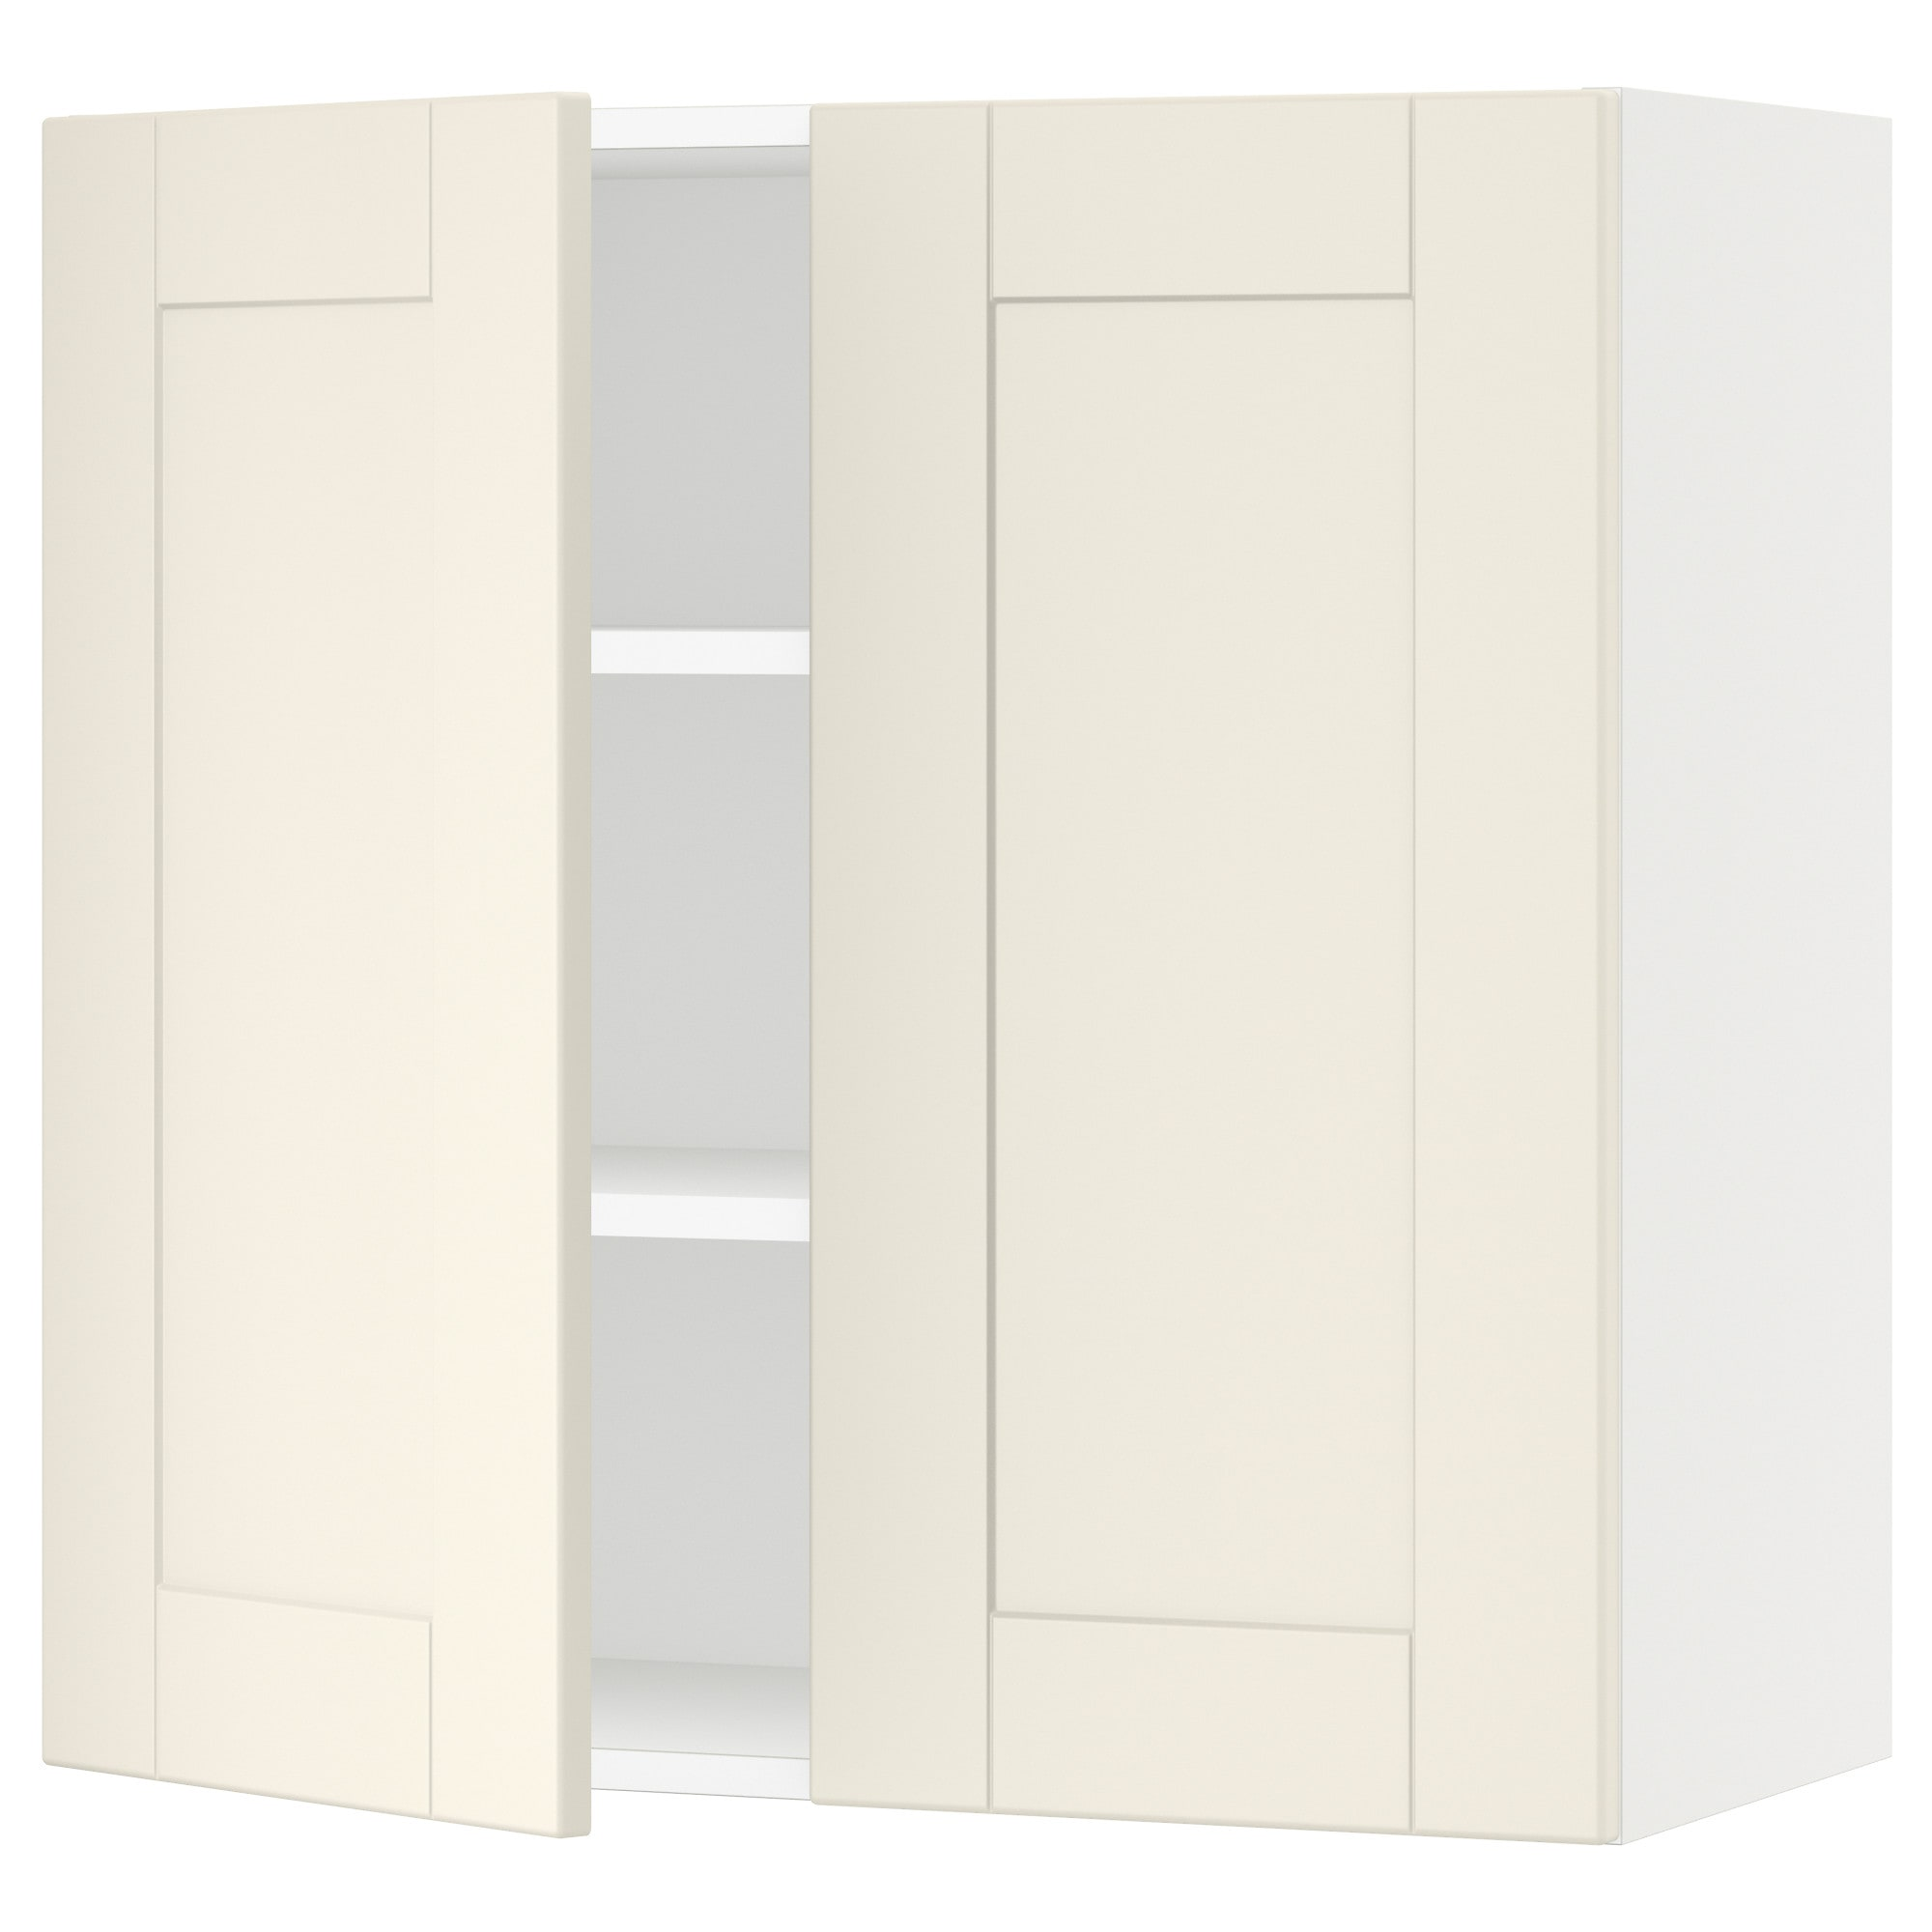 SEKTION Wall cabinet with 2 doors - white, Grimslöv off-white ...